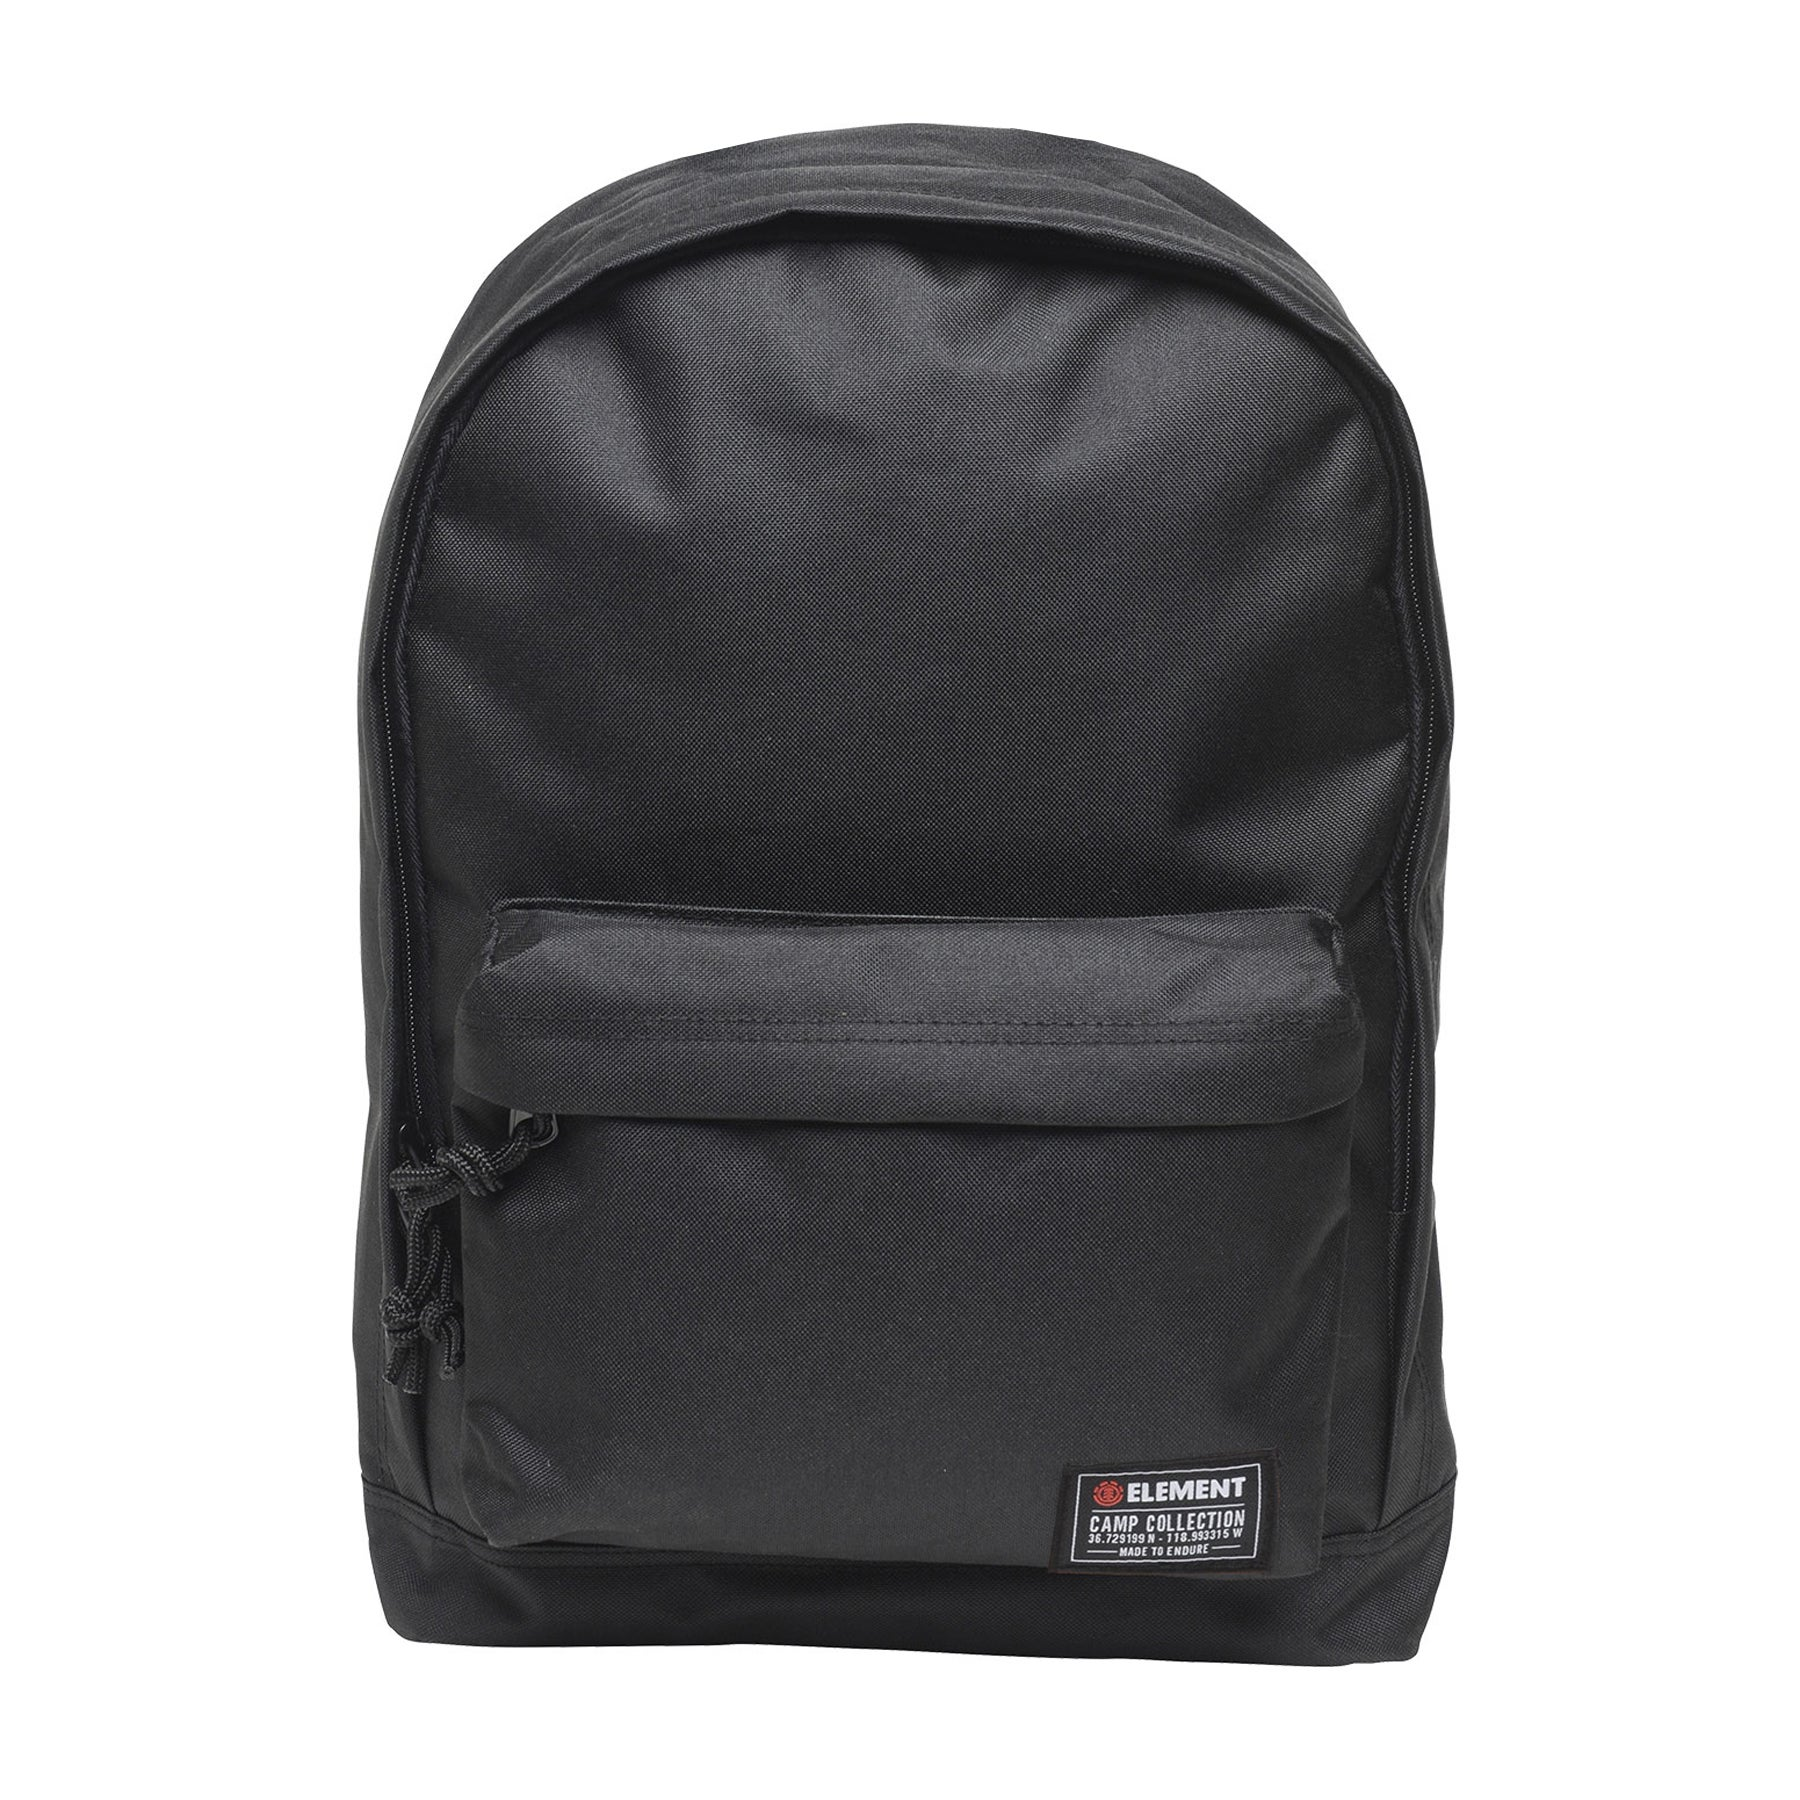 6cb26f02e5b Element Beyond Backpack - Free Delivery options on All Orders from Surfdome